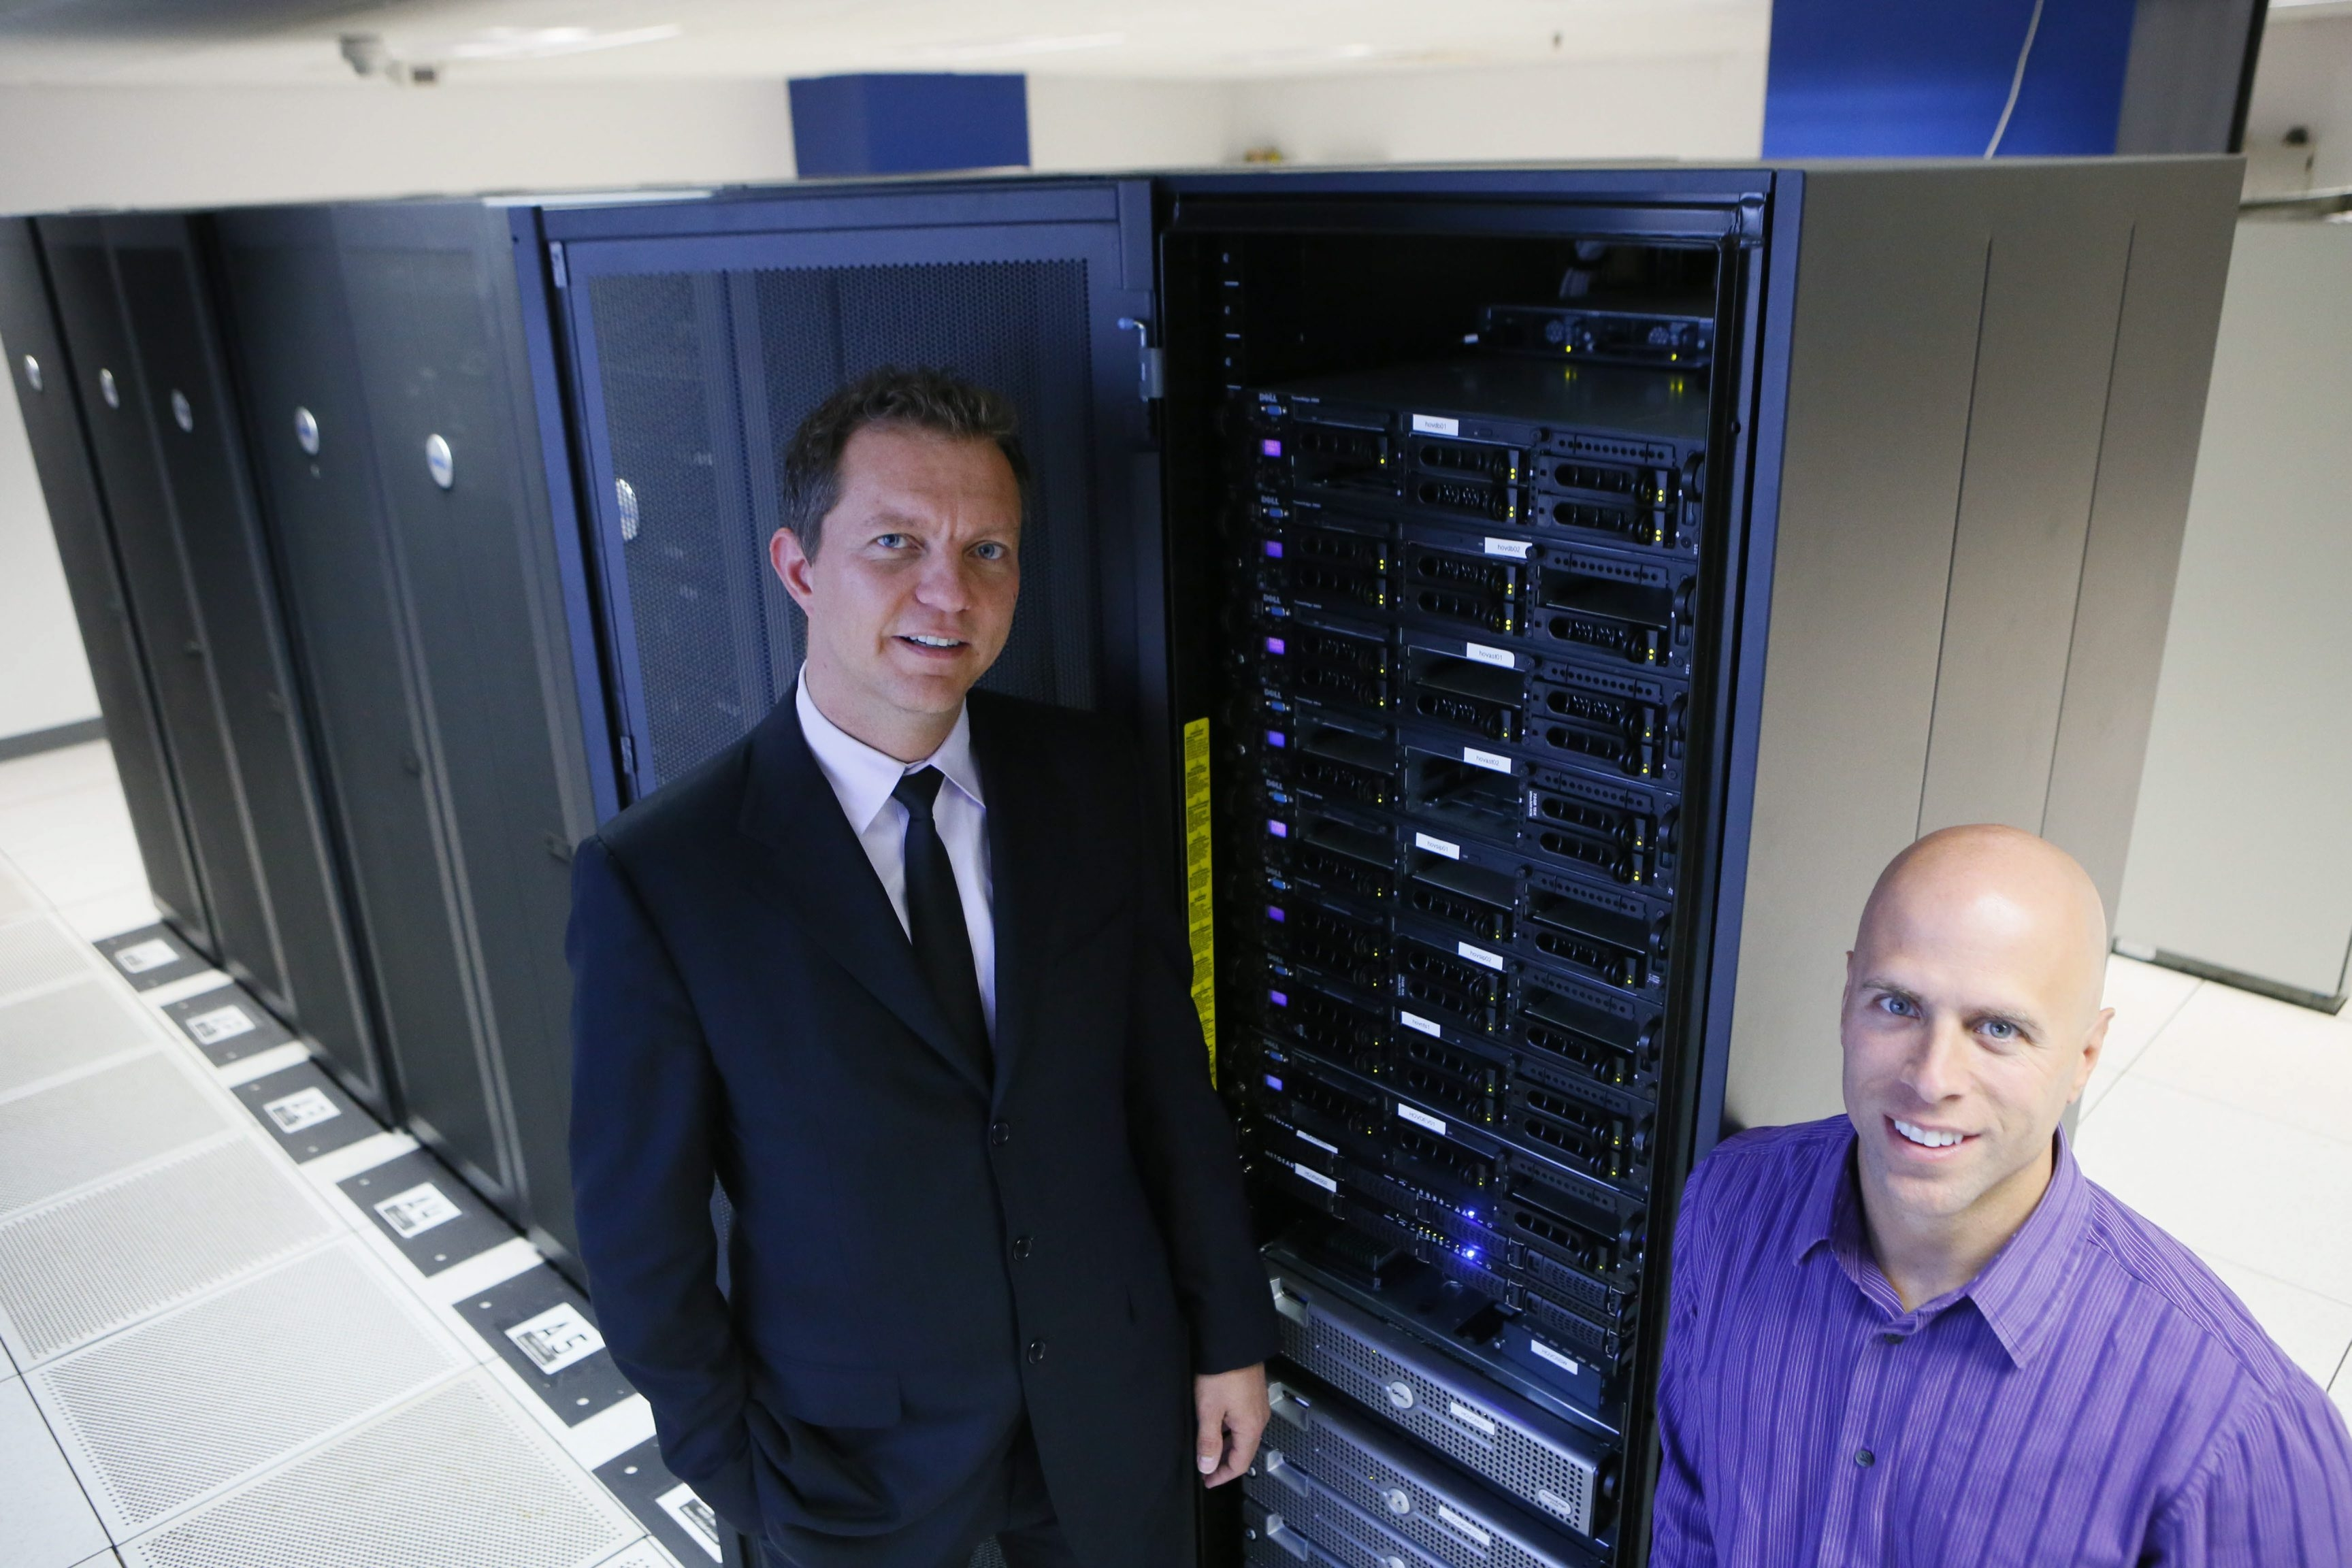 Hover Networks co-founders Sean Hus Var, left, and Darren Ascone, stand inside the server room at Shatter I.T. Hover Networks has about 350 clients, including Perry's Ice Cream, Dunn Tire and Hunt Real Estate.